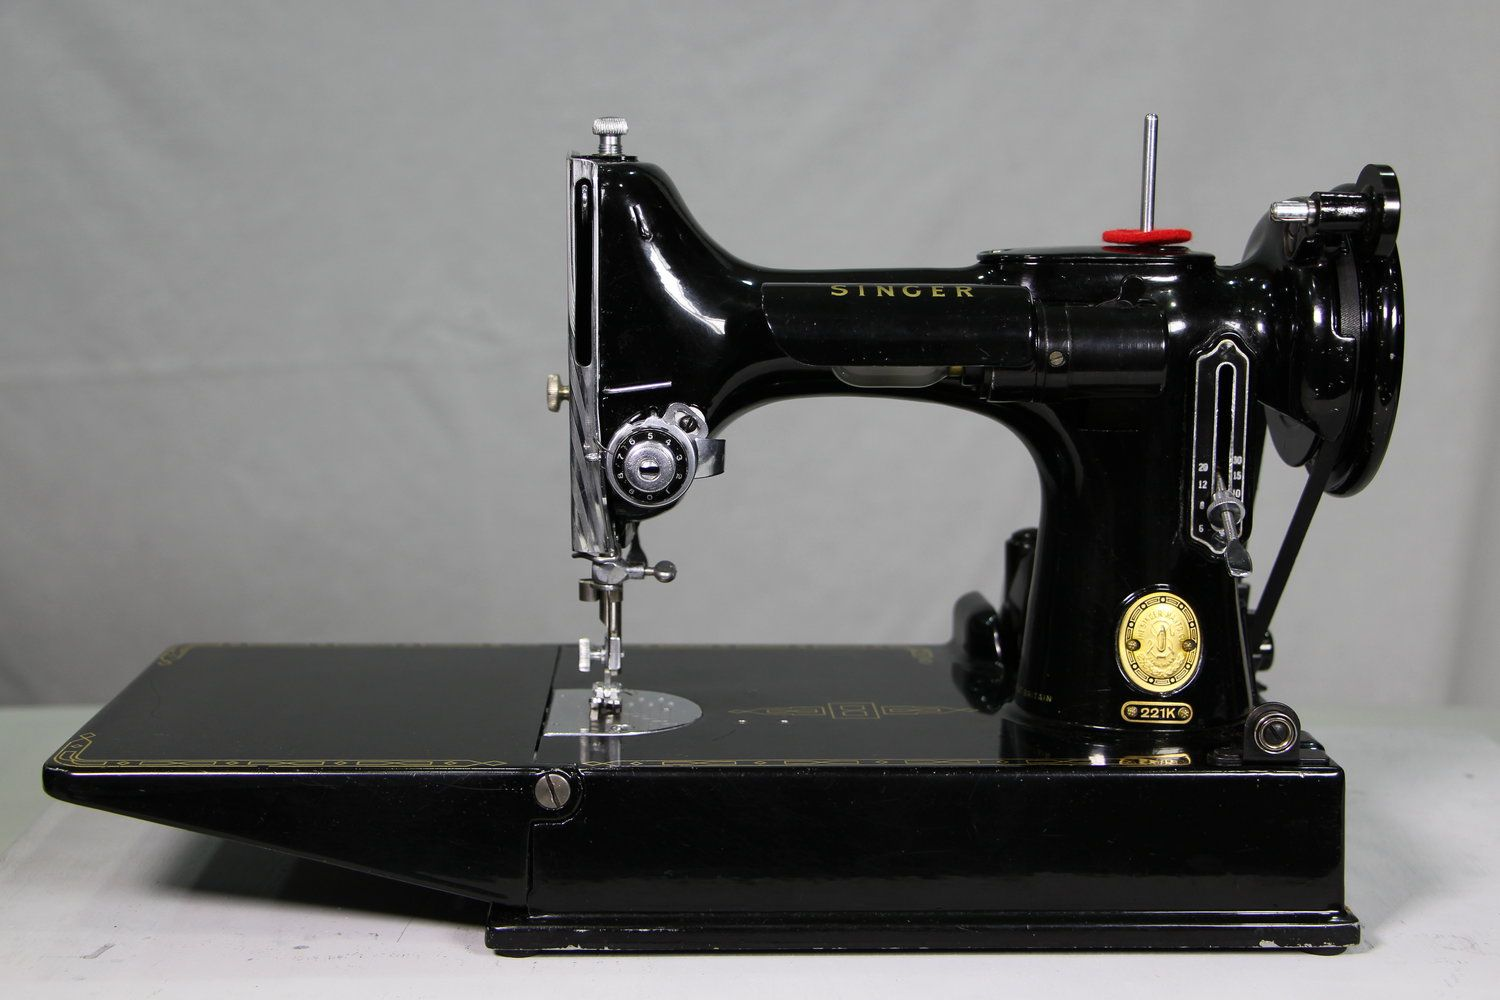 What Sewing Machine Should I Buy For Quilting